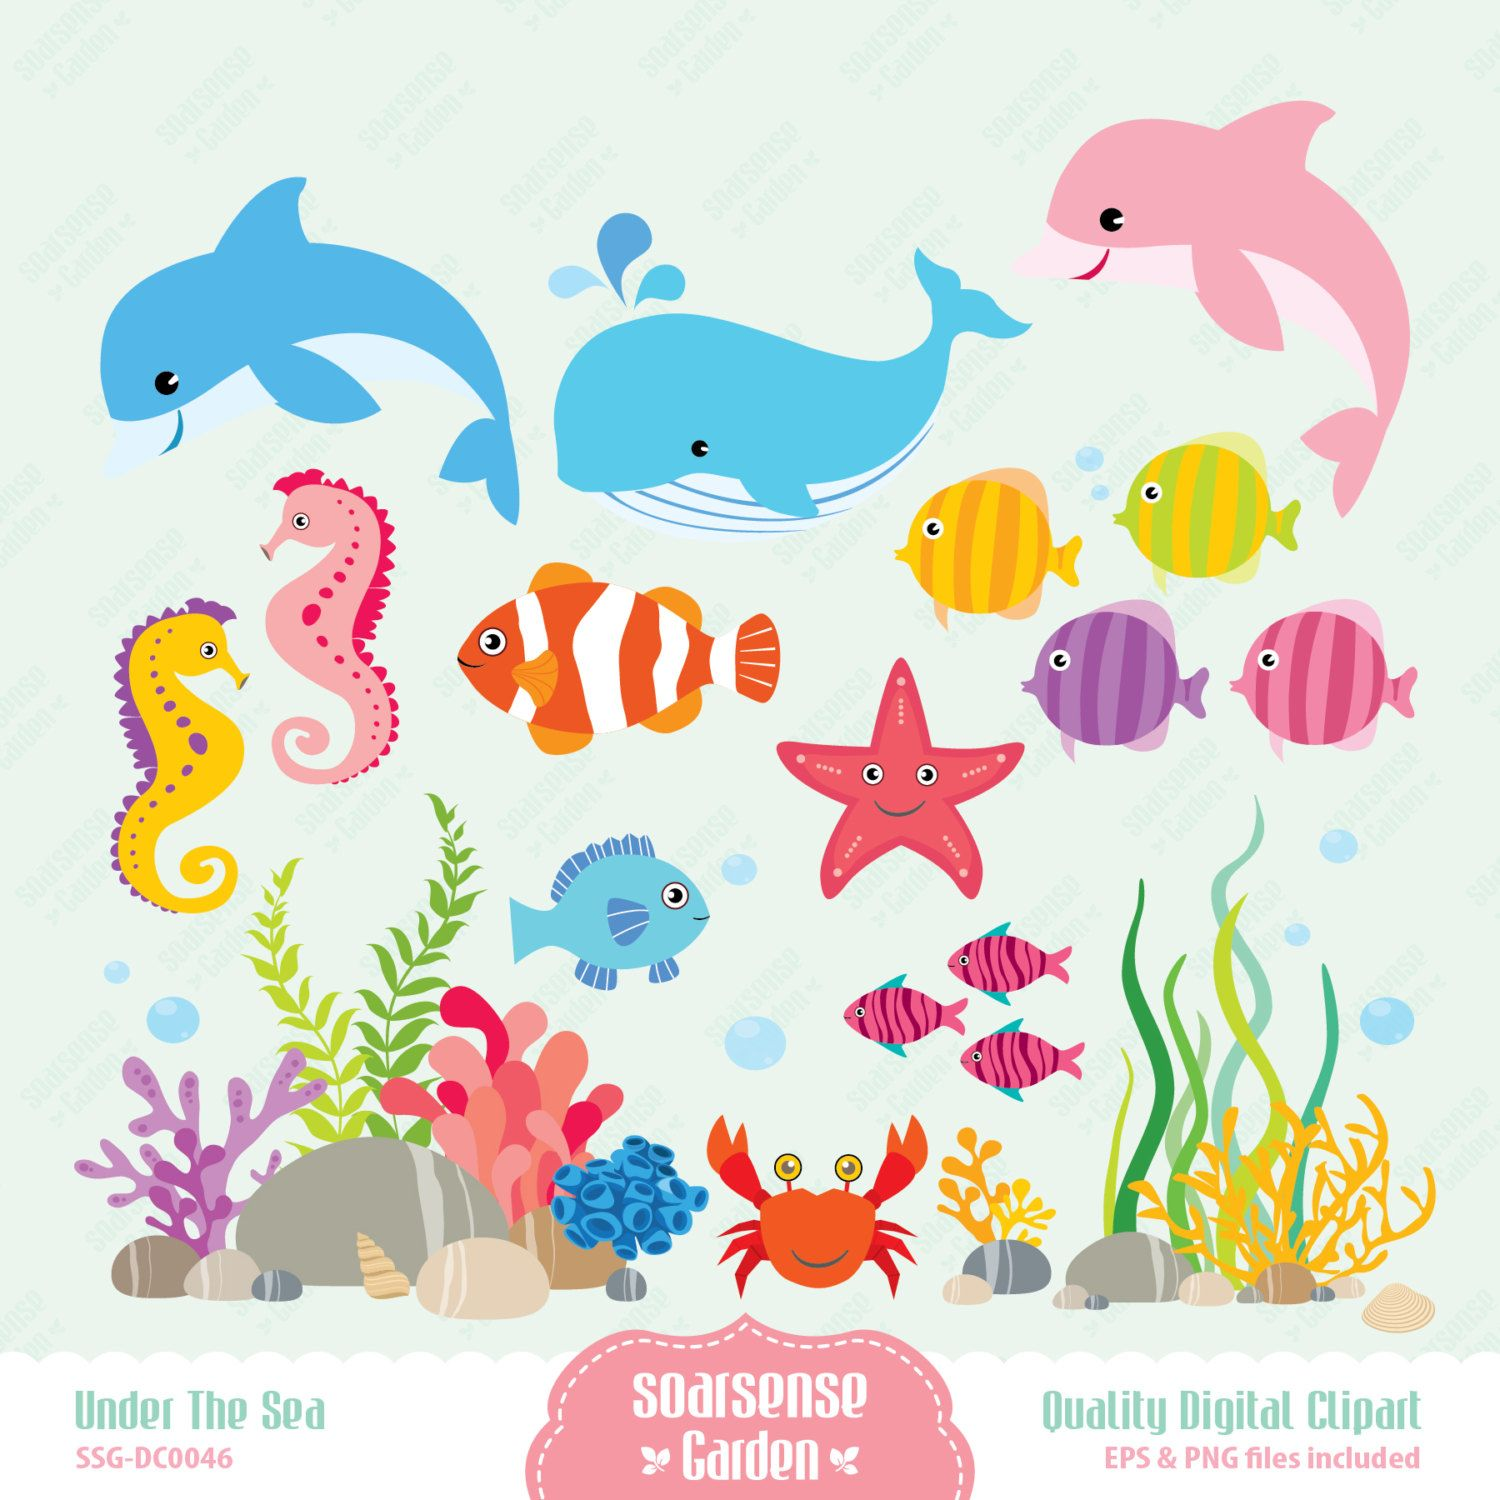 World under the sea clipart vector freeuse library Clip Art Father S Day Gone Fi - Under The Sea Clip Art ... vector freeuse library